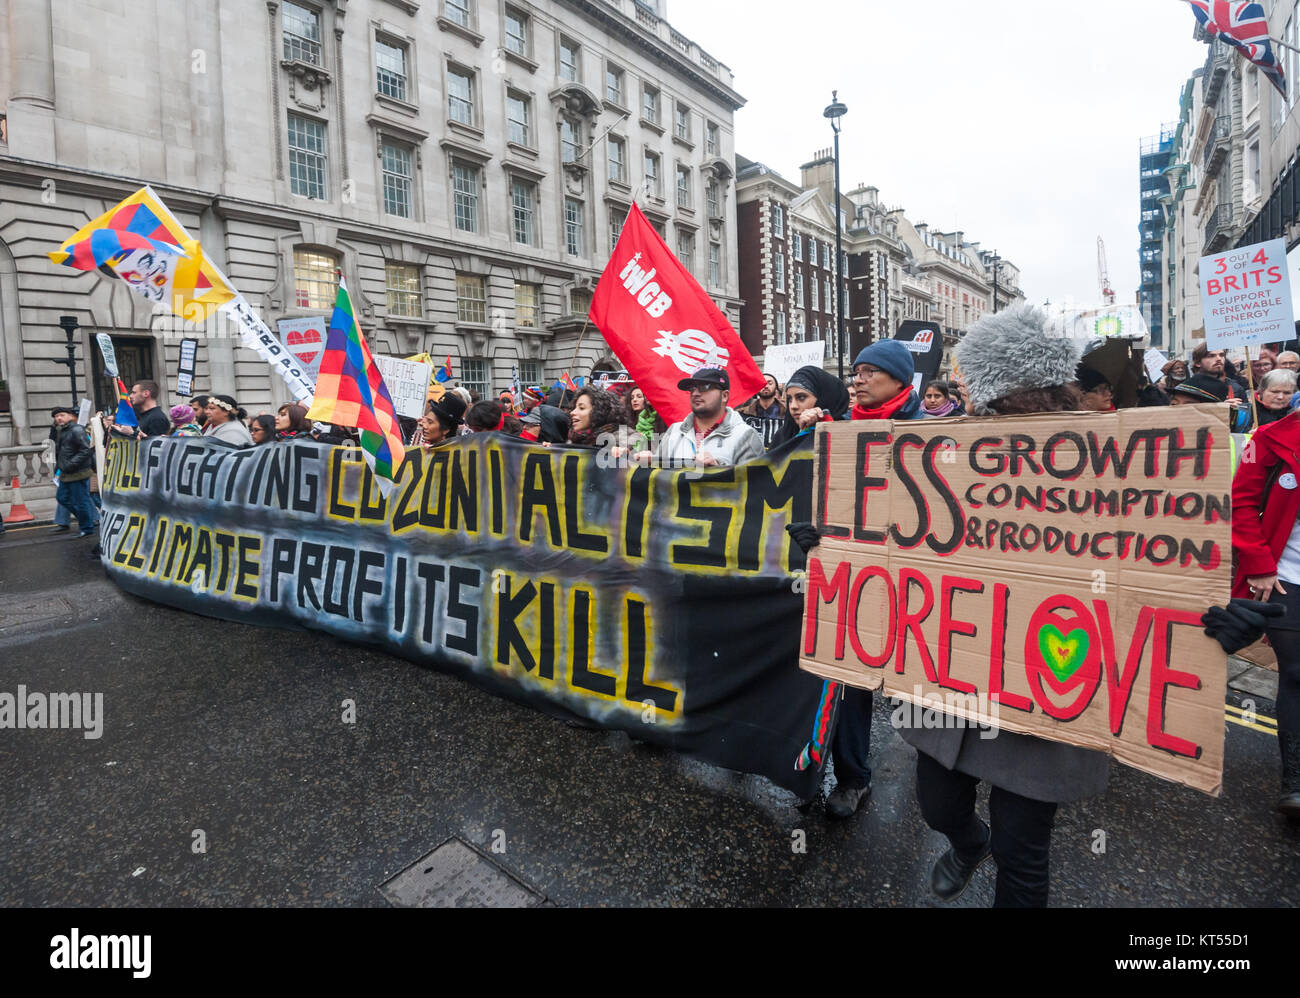 The banner of the Global Frontlines bloc in Pall Mall,  'Still Fighting CO2onialism - Your Climate Profits Kill' - Stock Image